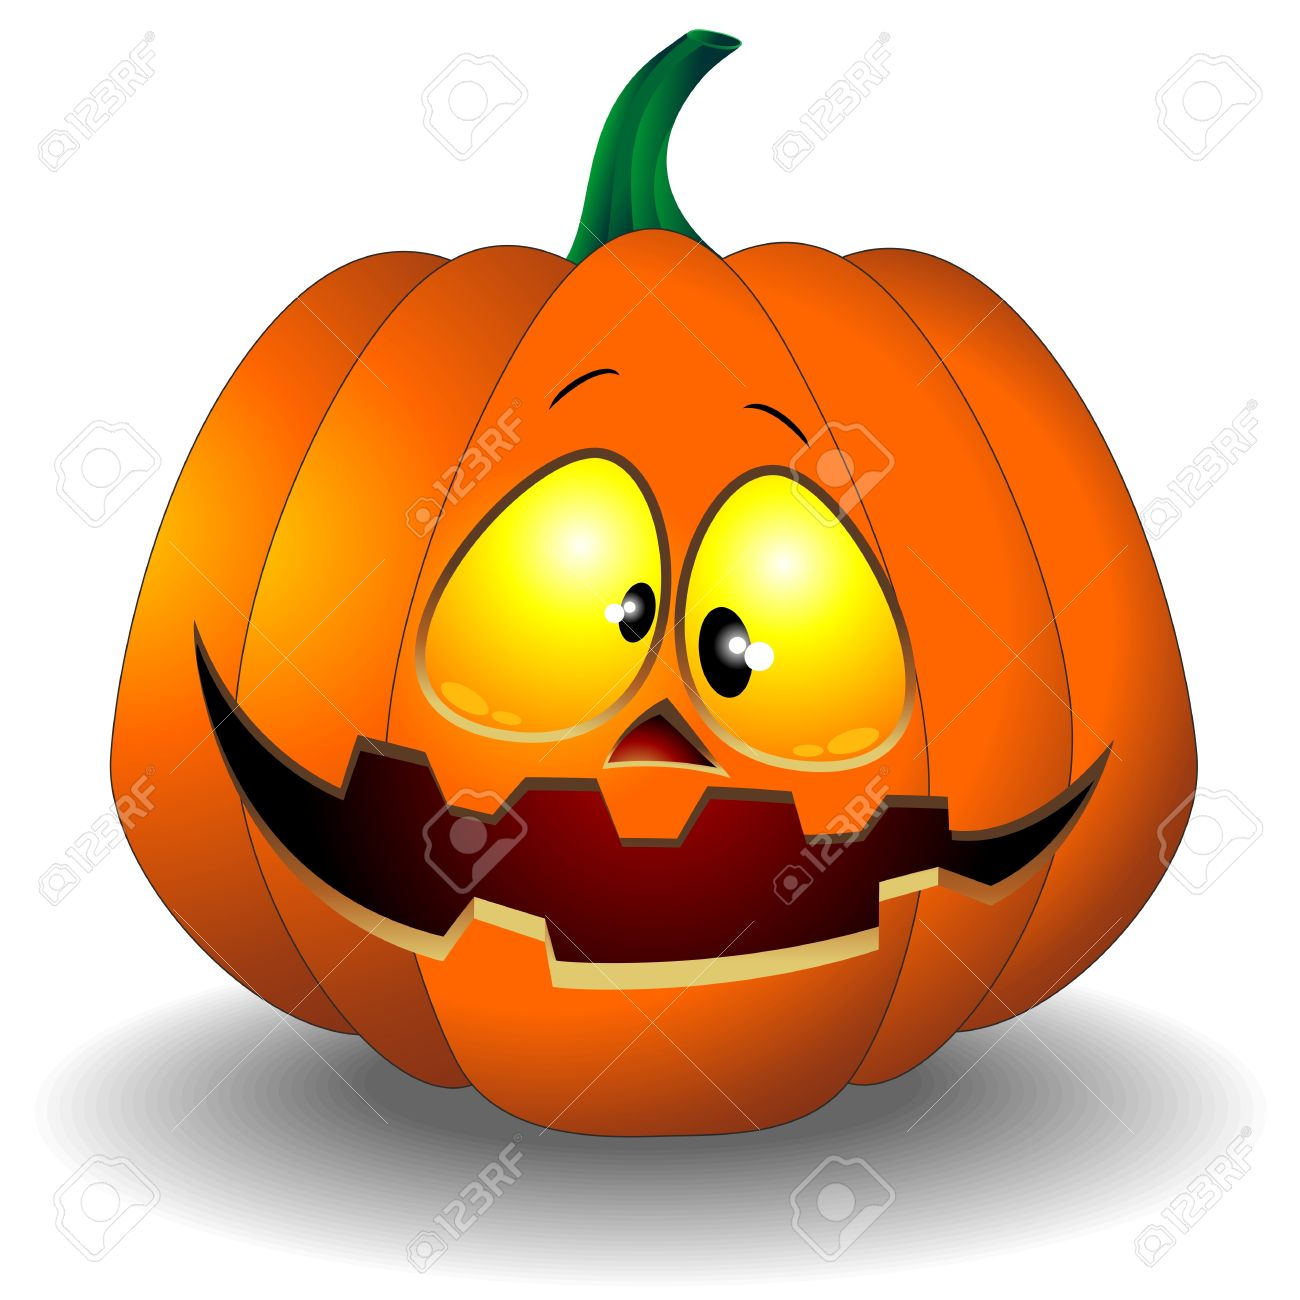 Funny Halloween Pumpkin Cartoon Royalty Free Cliparts, Vectors ...